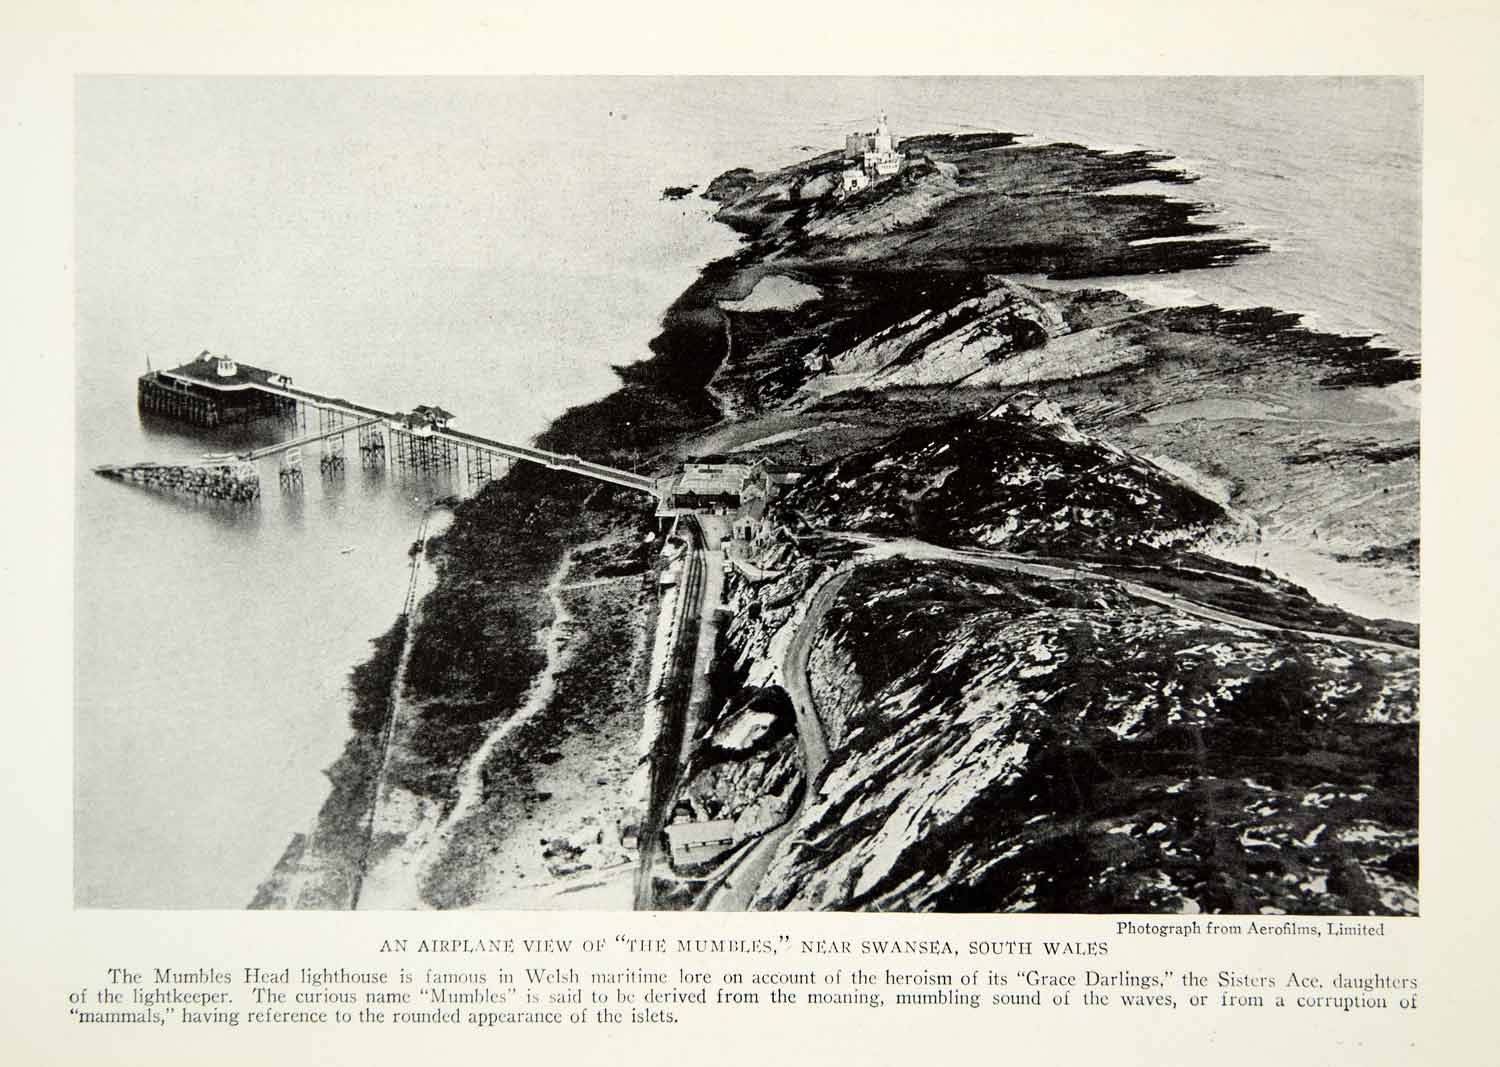 1923 Print Mumbles Head Lighthouse Wales Swansea Aerial View United NGMA1